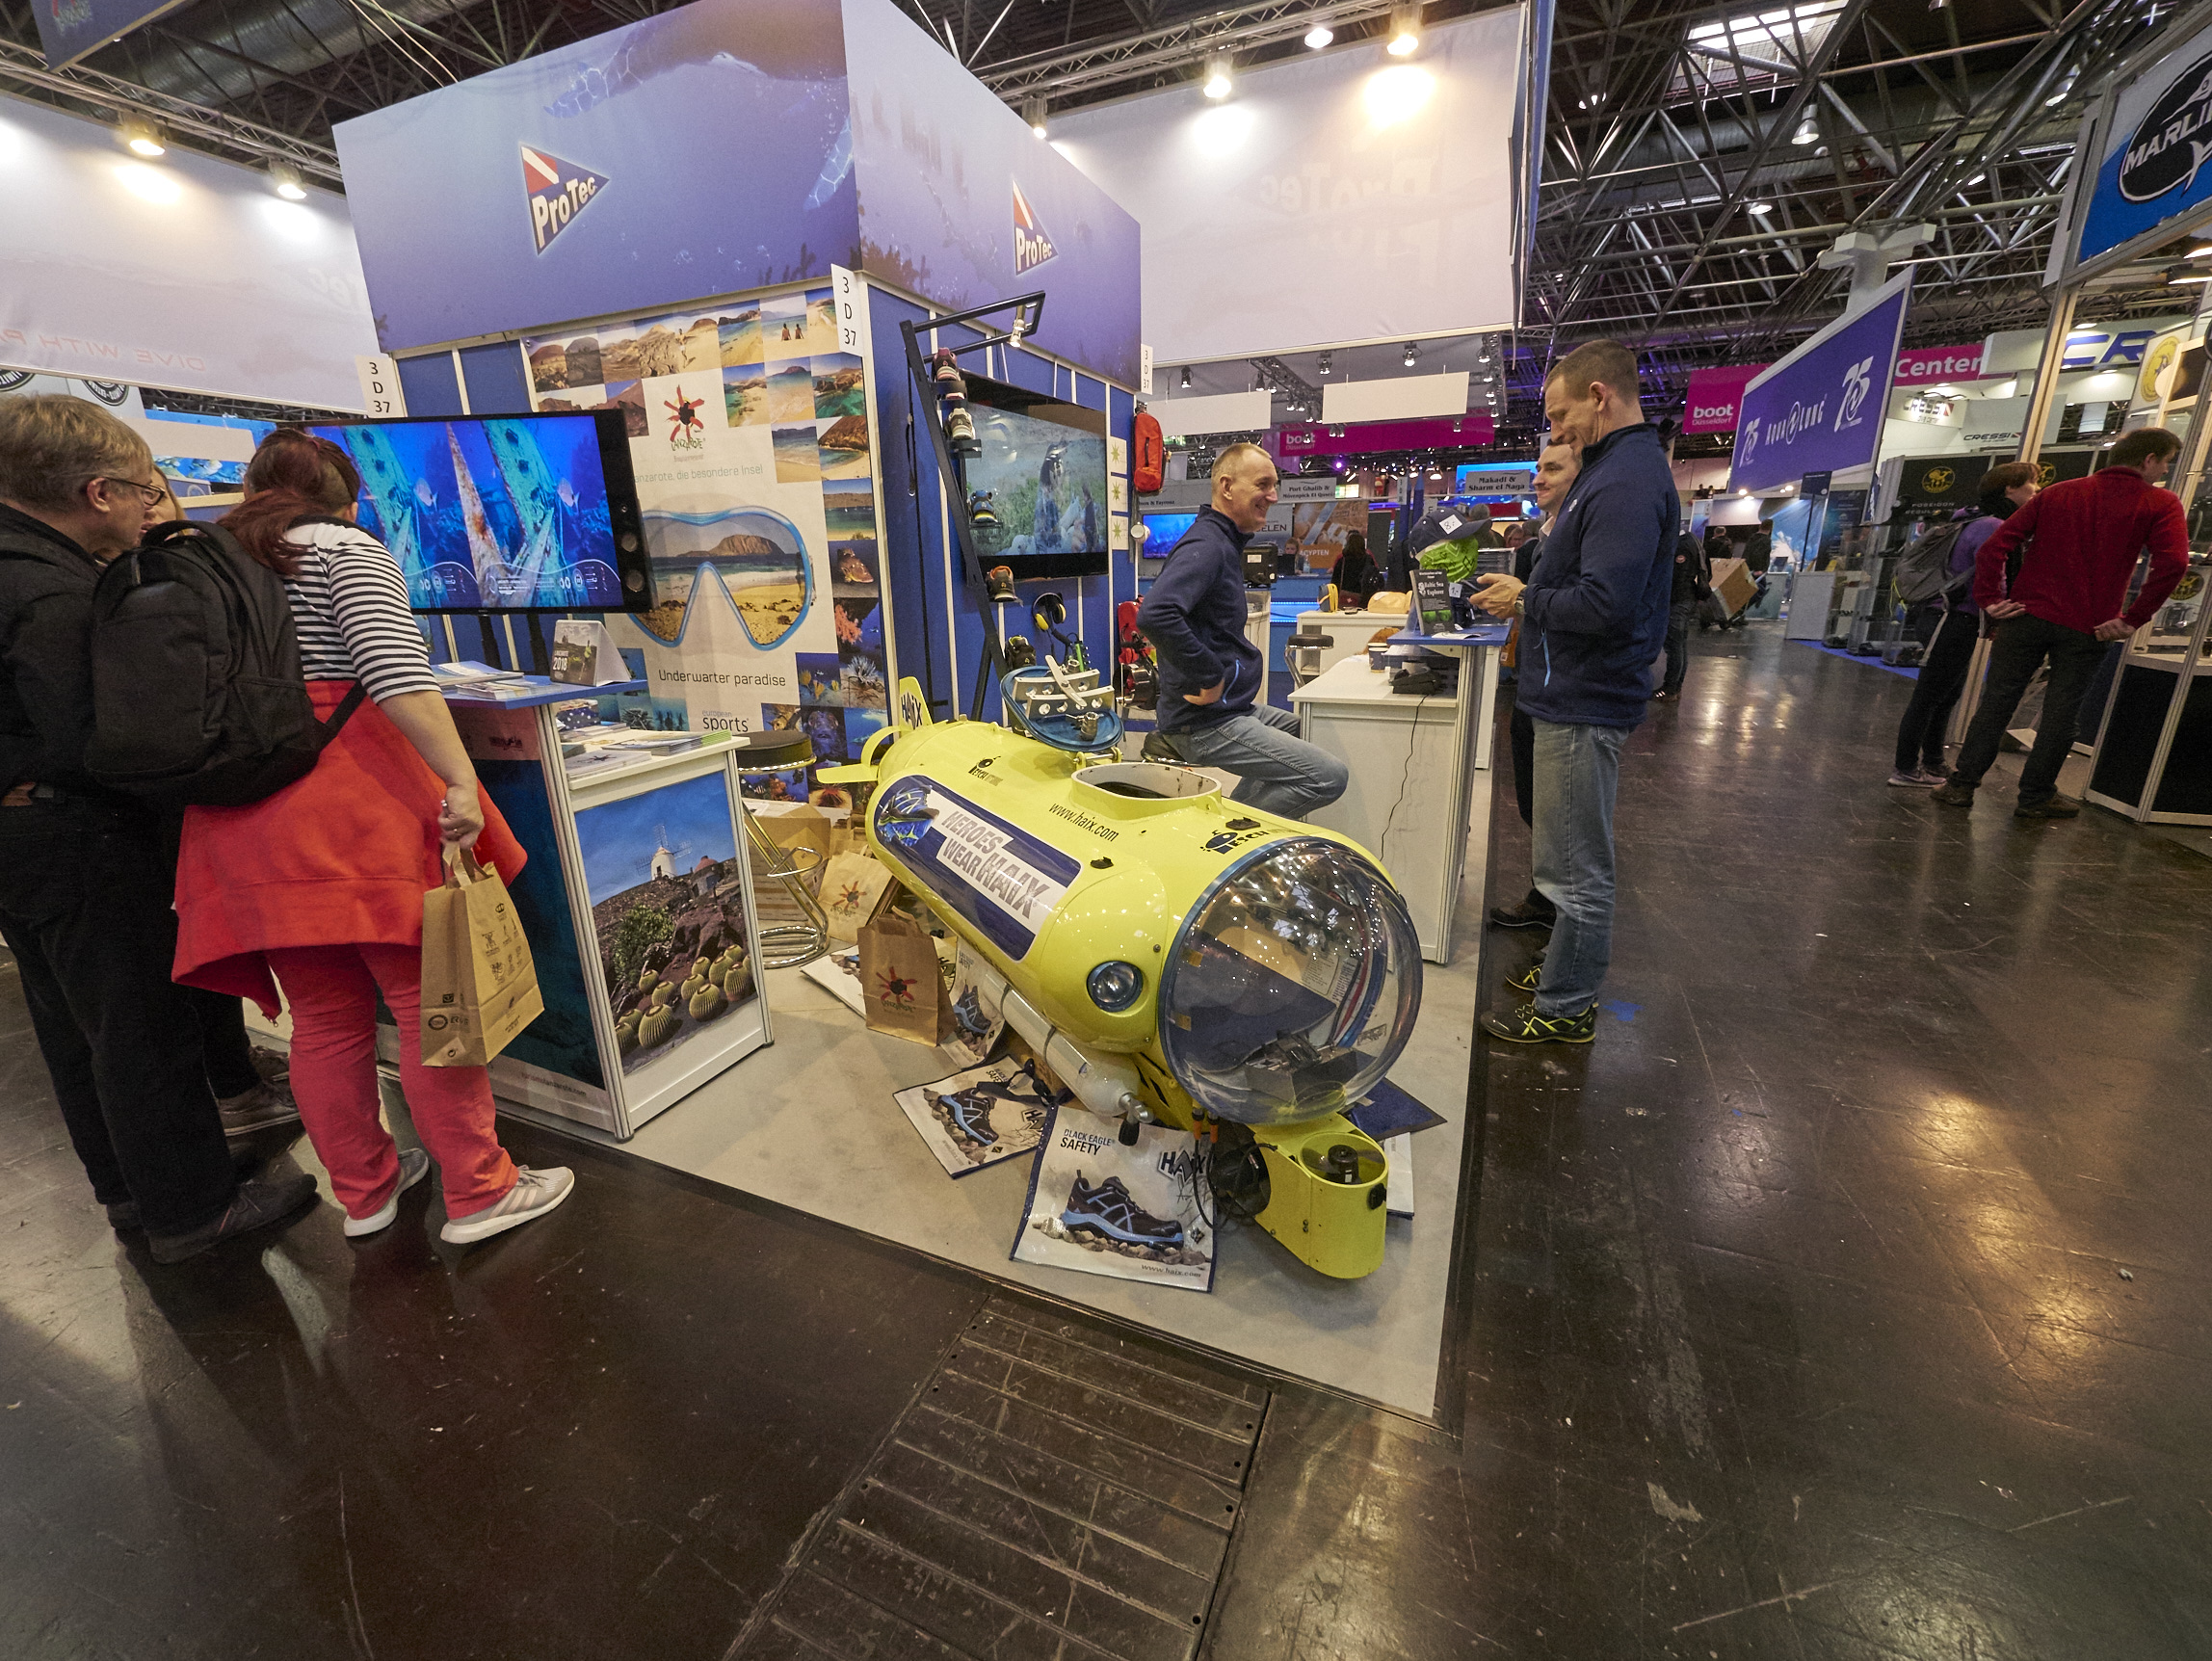 boot 2018 Düsseldorf dive center